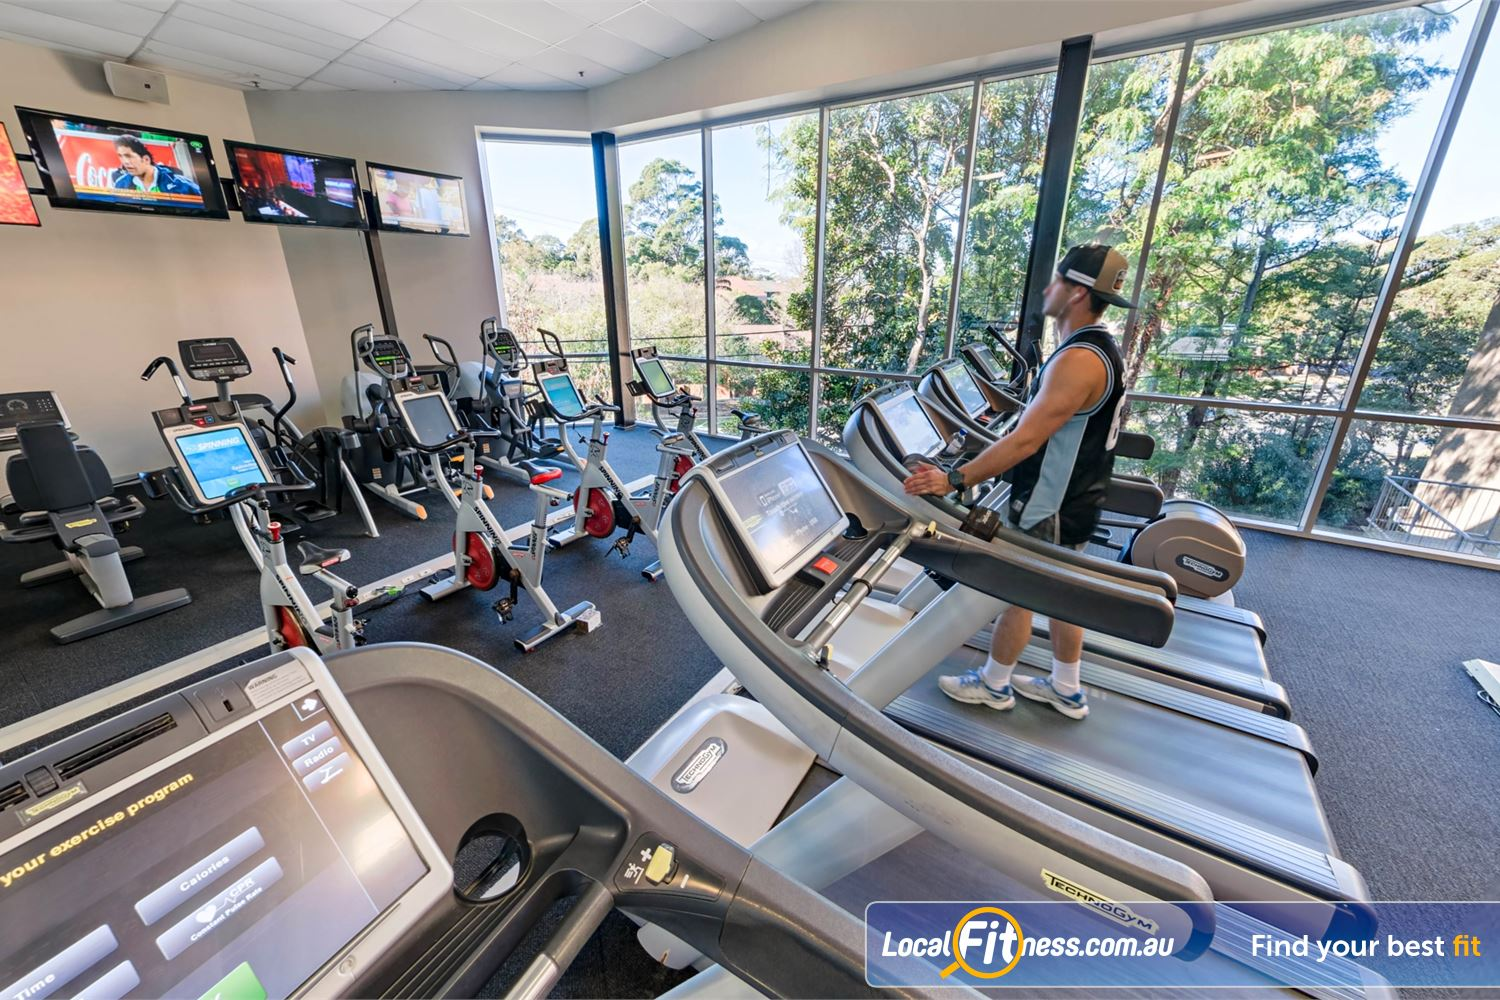 Fitness First Near Caravan Head State of the art cardio with personal entertainment screens.